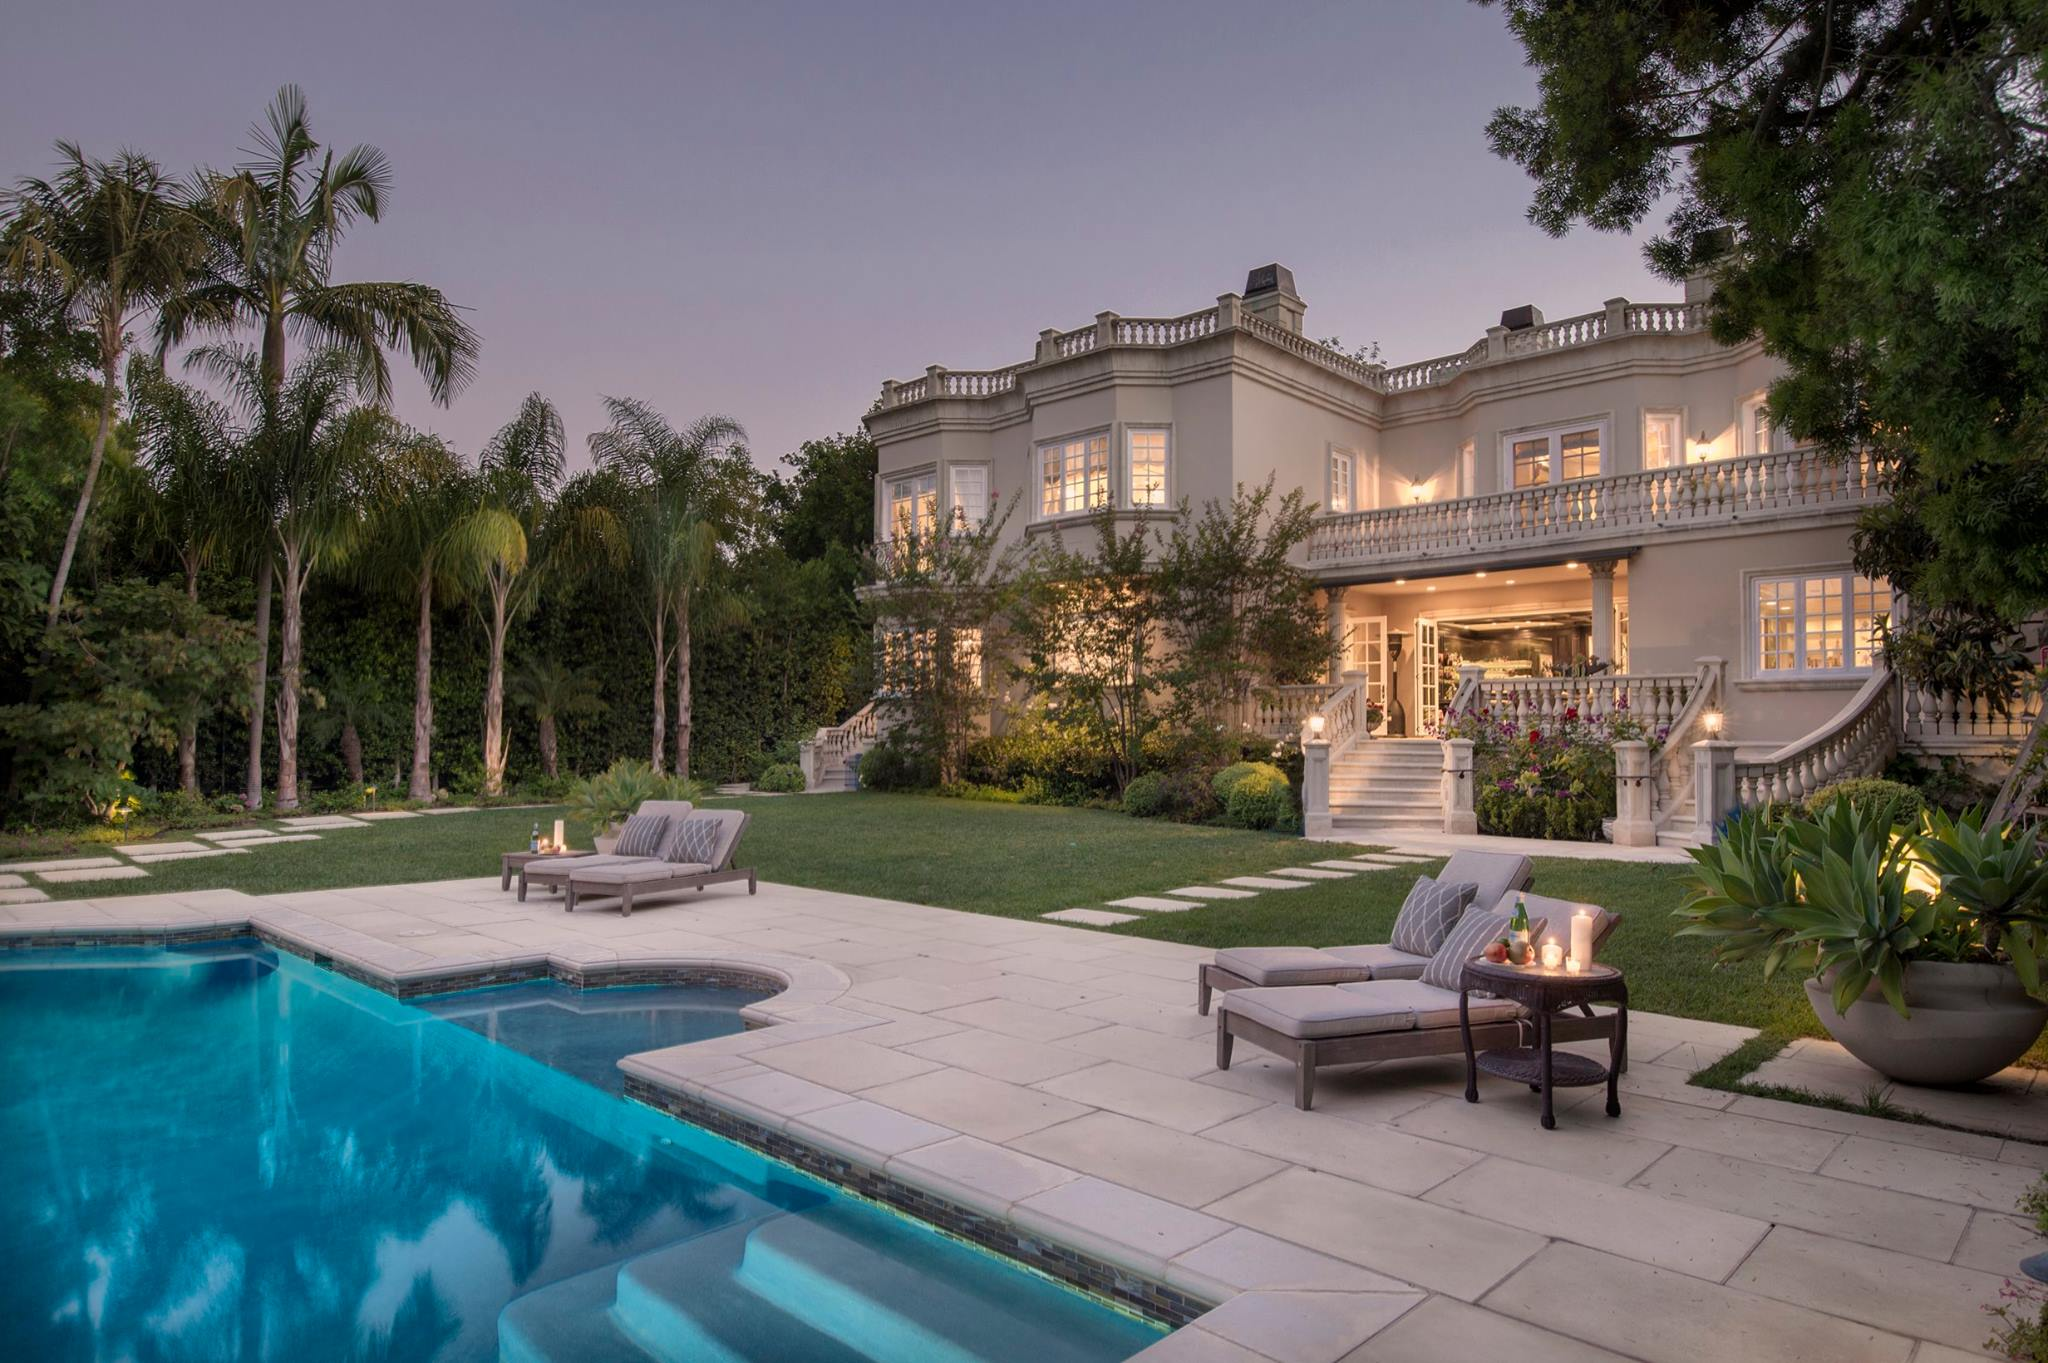 808 N Alpine Dr. Beverly Hills 90210